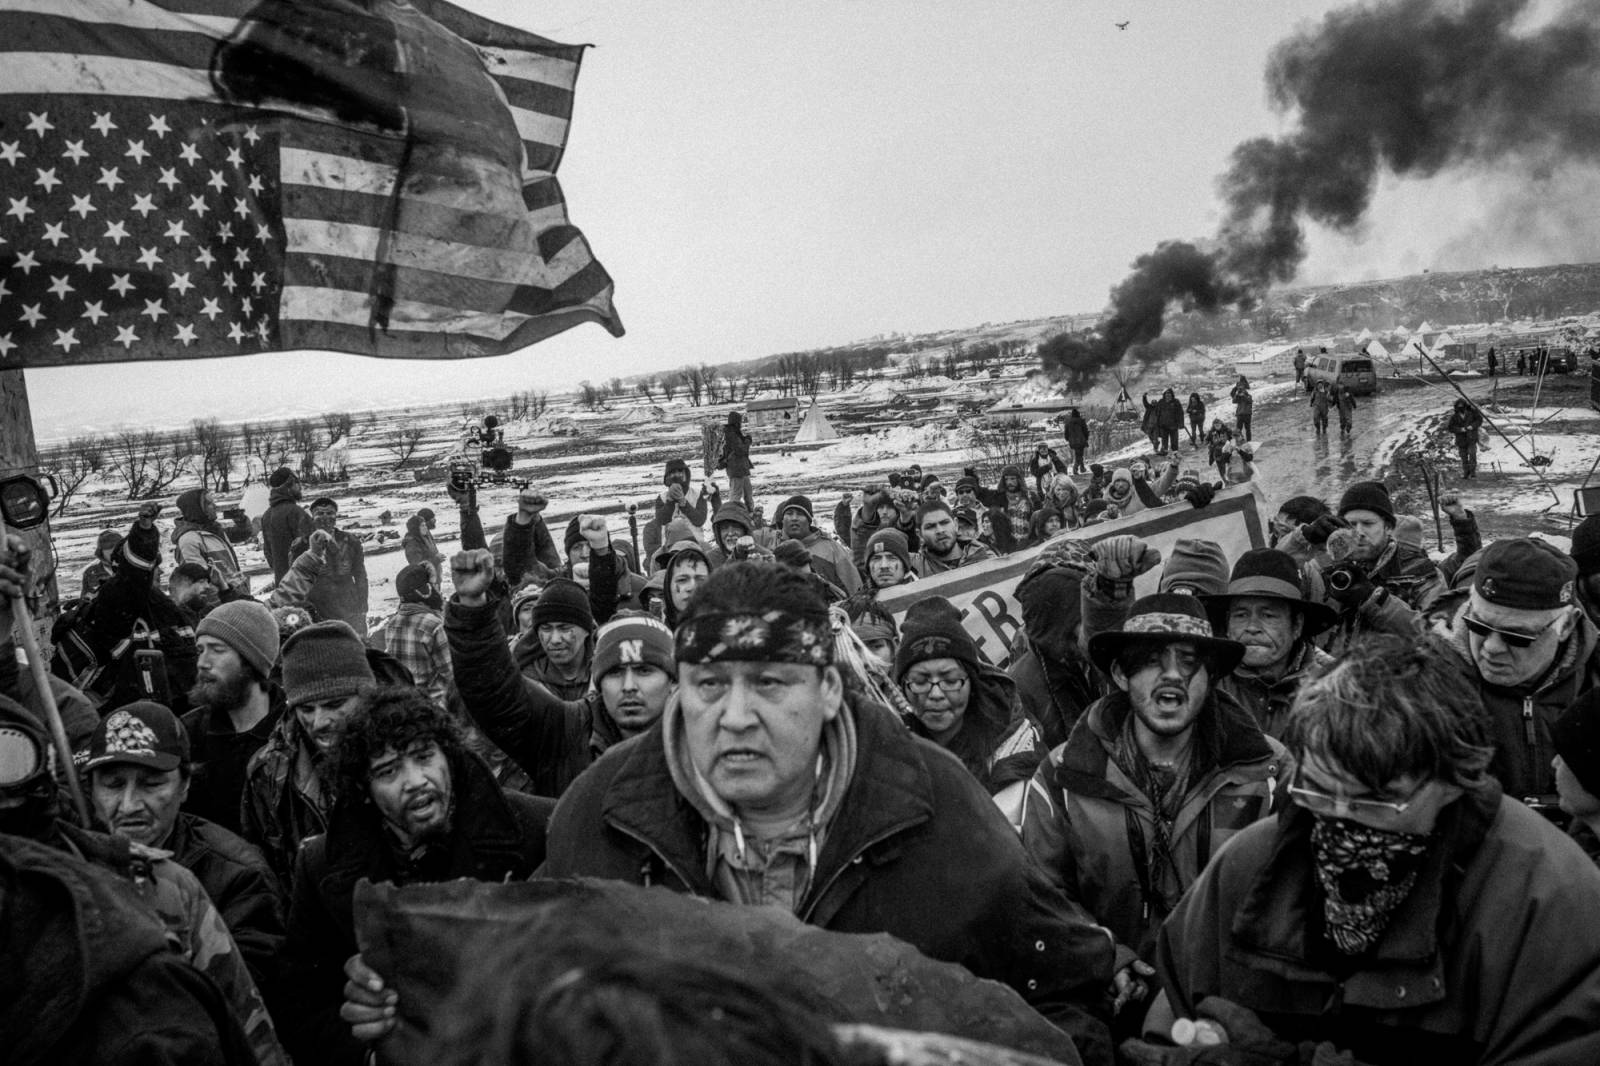 Photo by Josué Rivas from his project documenting the opposition to the Dakota Access Pipeline at the Oceti Sakowin Camp near the Standing Rock Sioux Reservation.